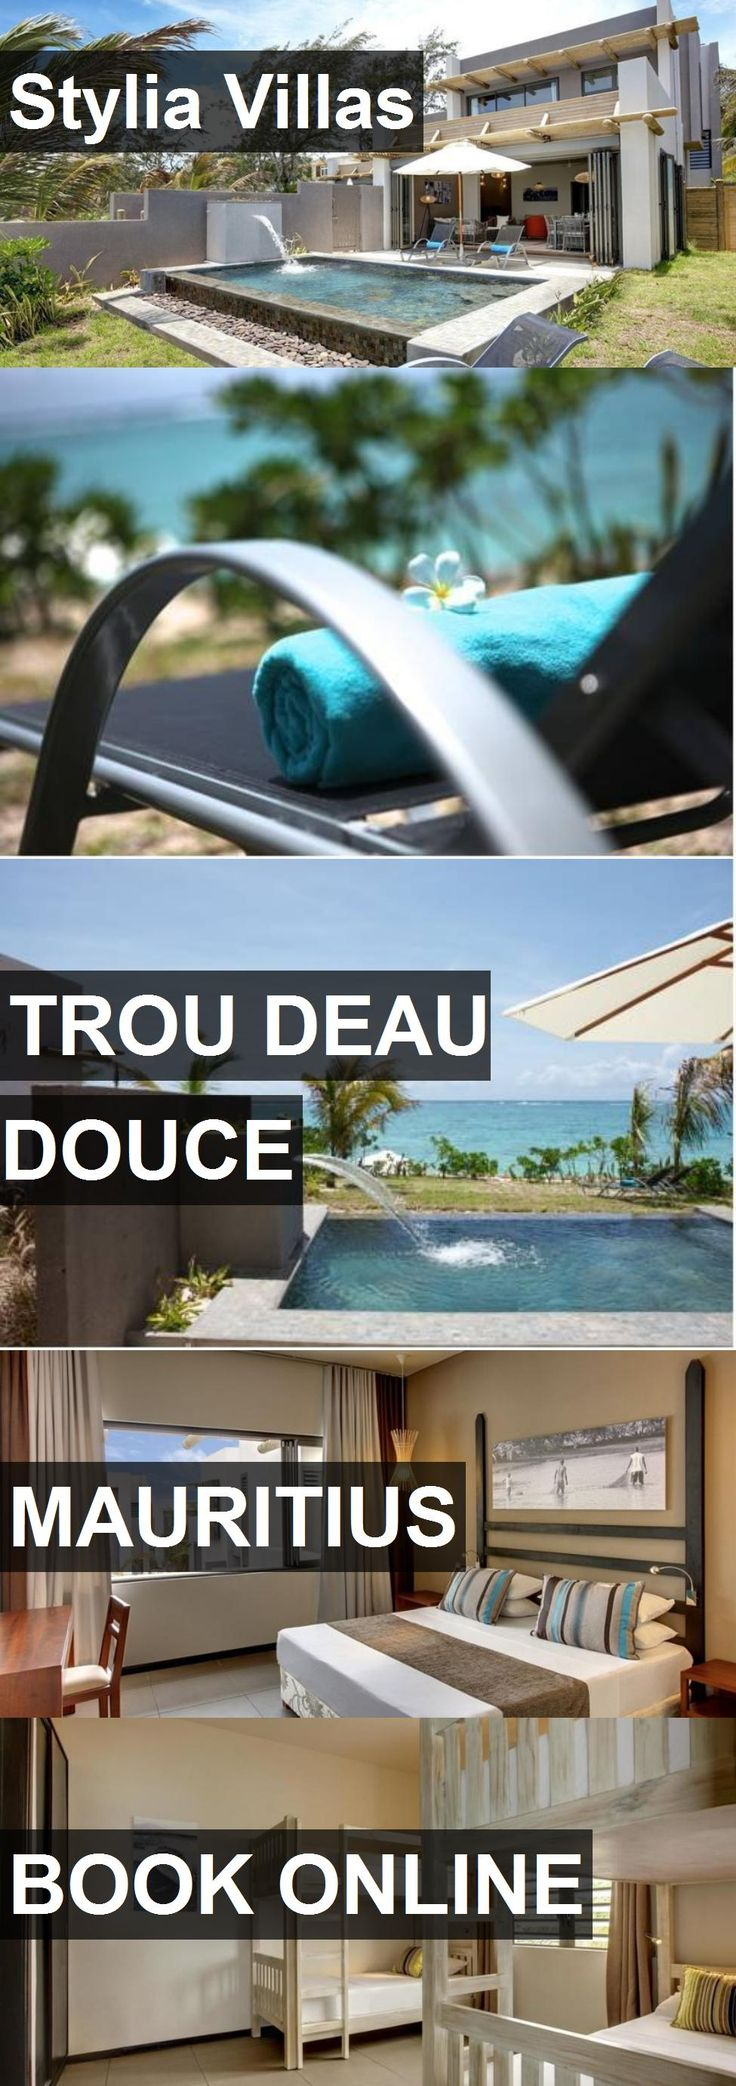 Hotel Stylia Villas in Trou Deau Douce, Mauritius. For more information, photos, reviews and best prices please follow the link. #Mauritius #TrouDeauDouce #travel #vacation #hotel